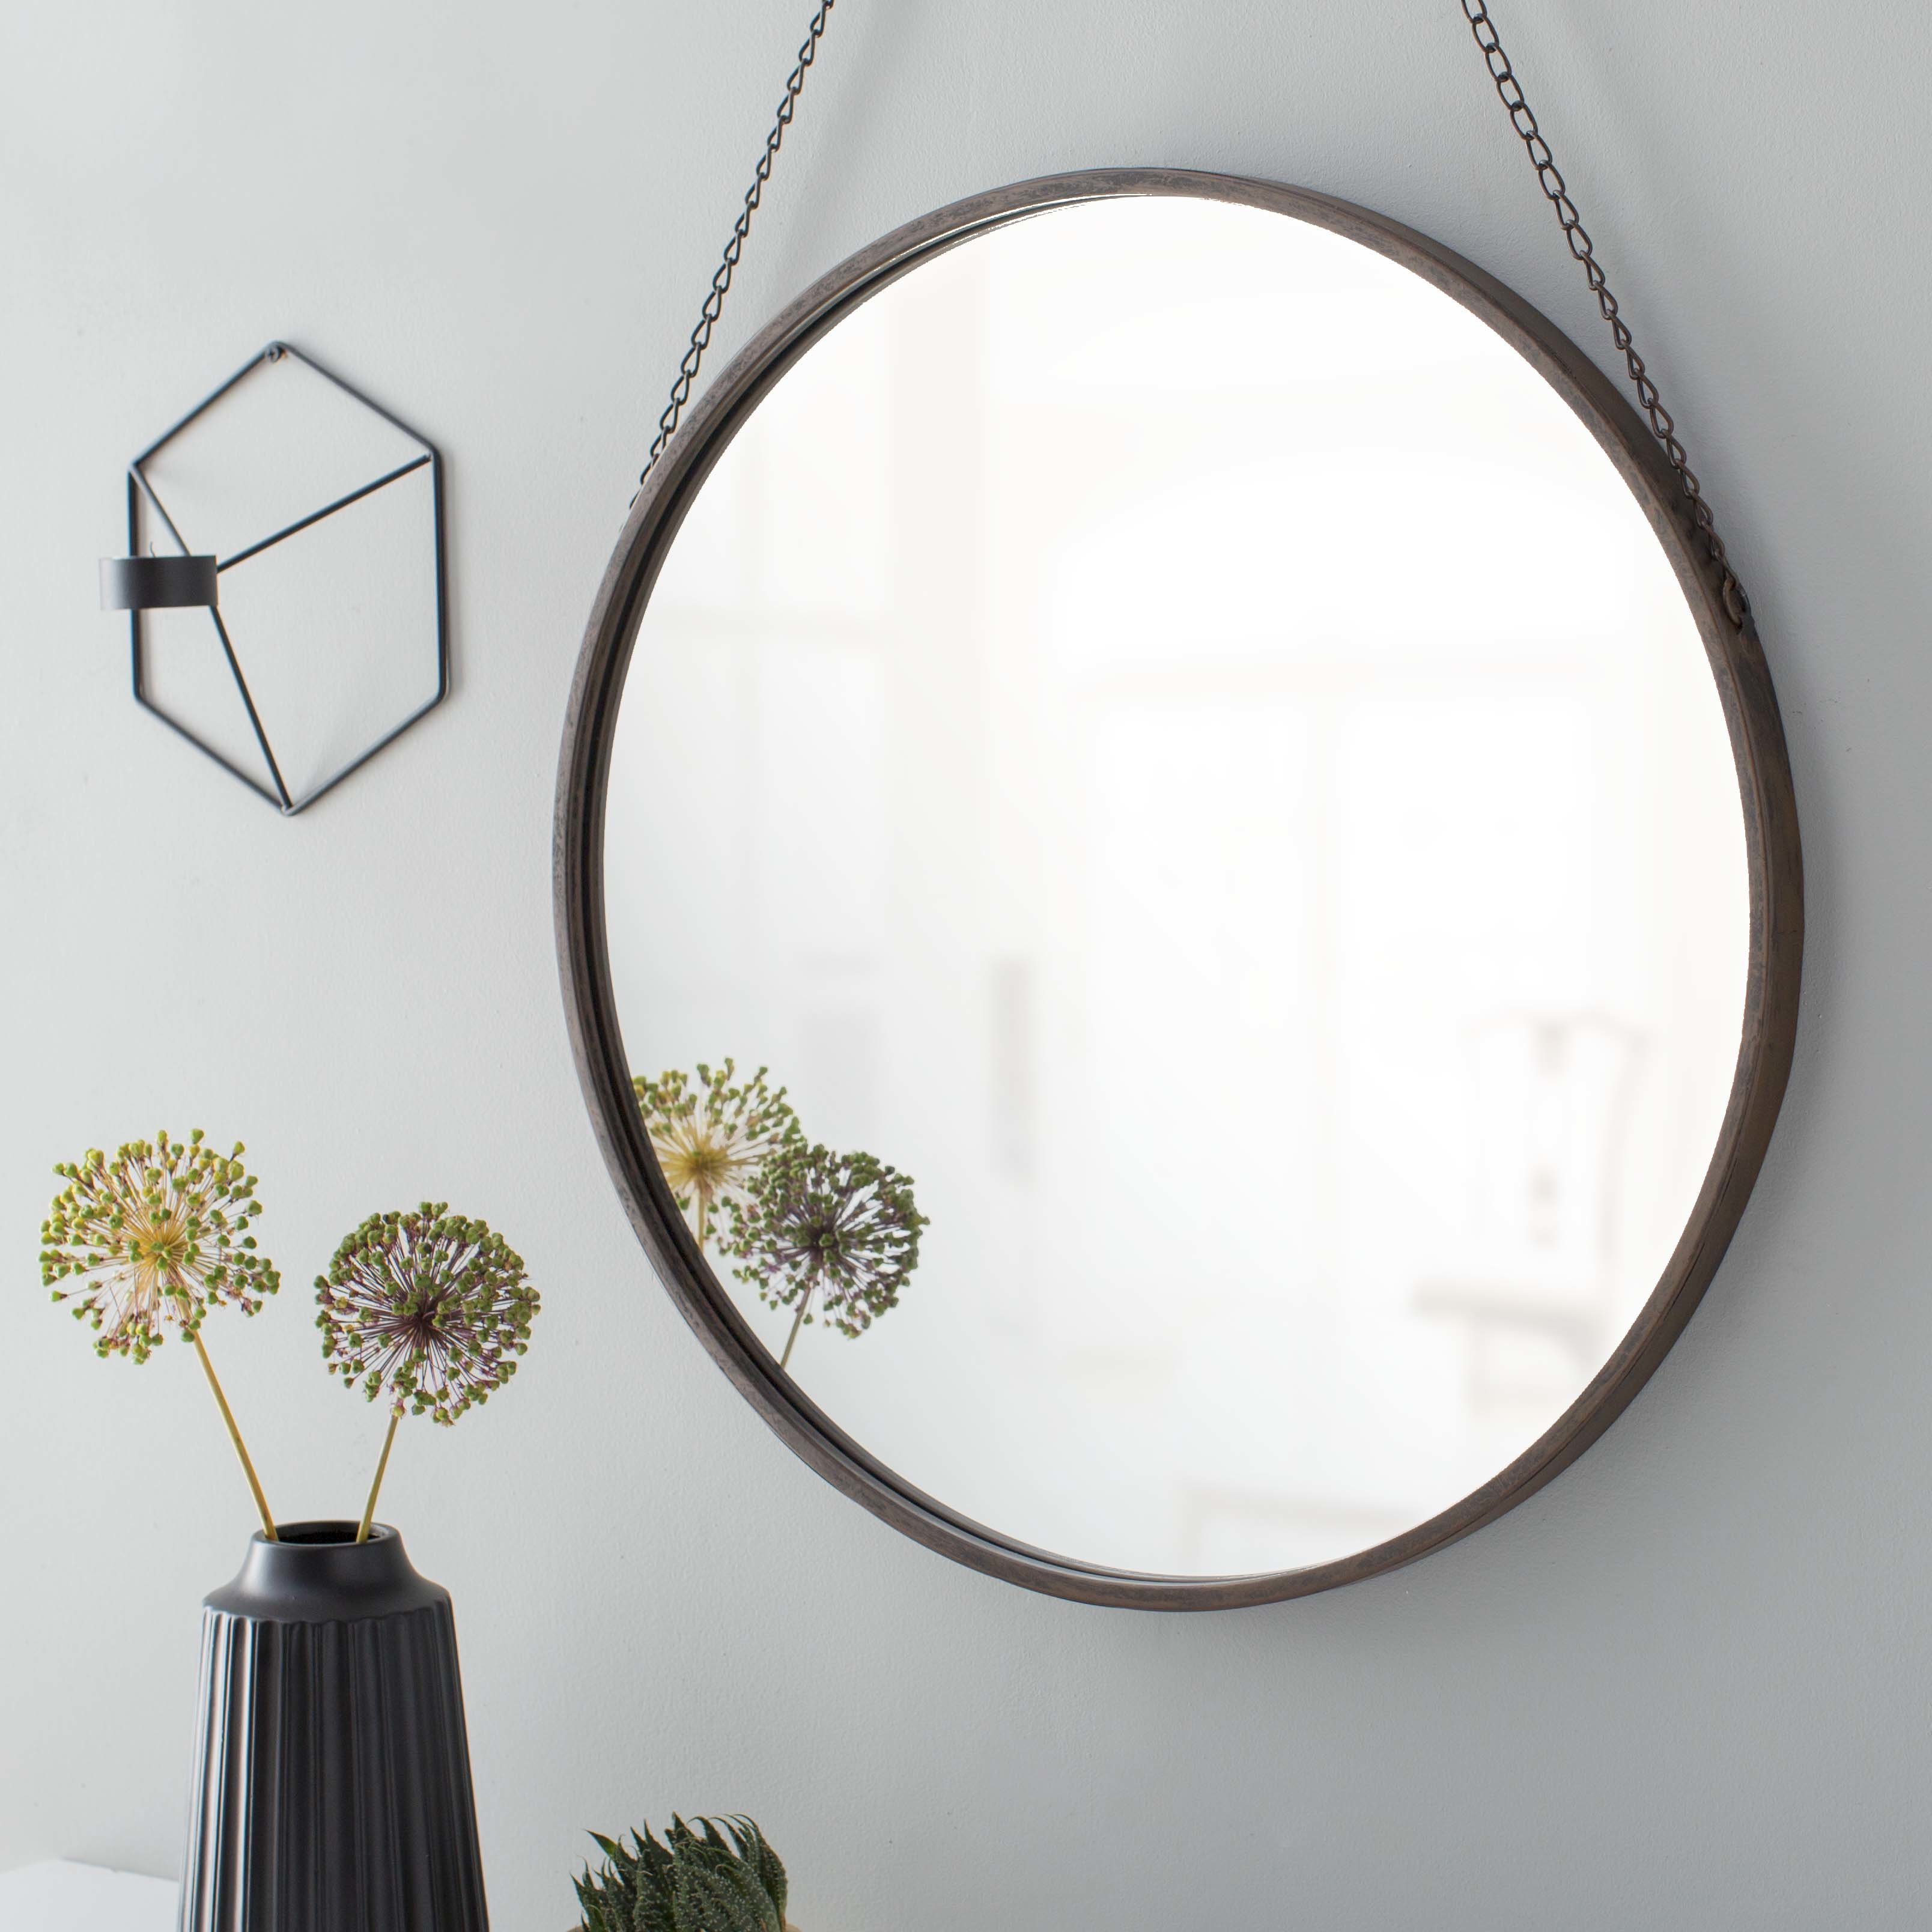 Modern Convex Wall Mirrors | Allmodern within Pennsburg Rectangle Wall Mirrors (Image 14 of 30)